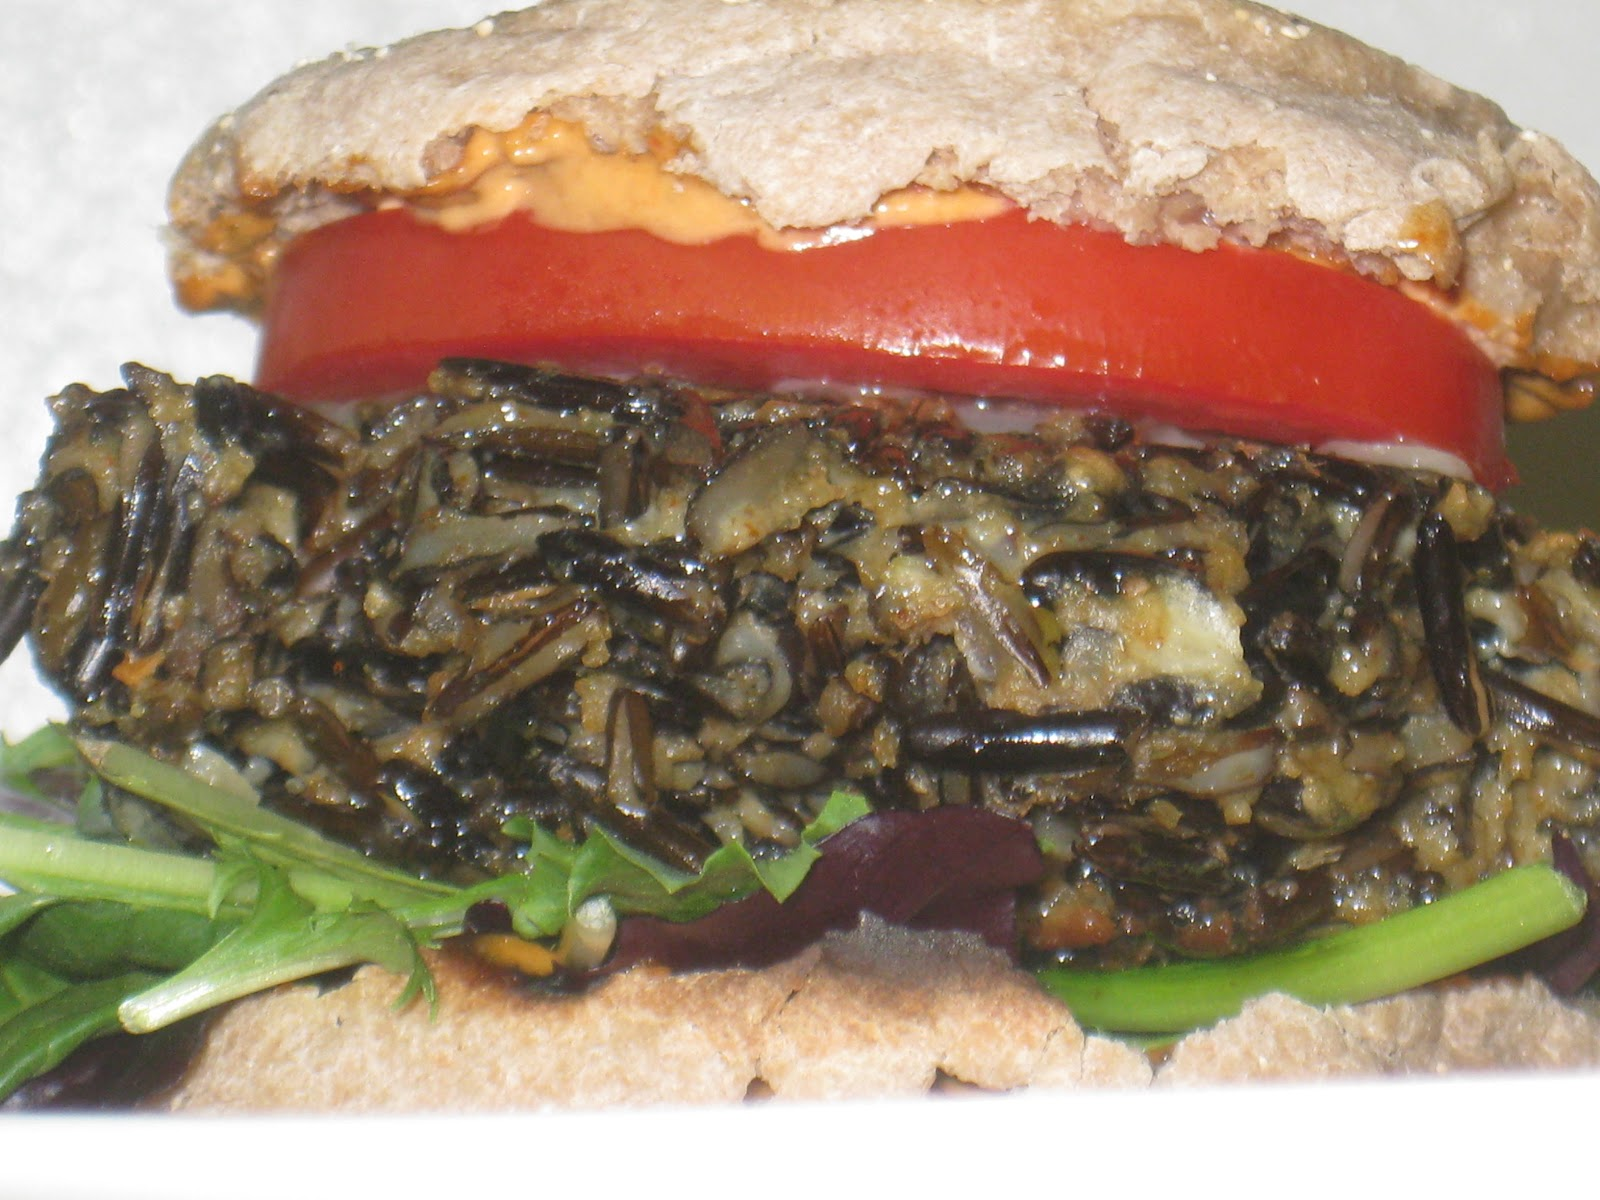 Wild Rice Burgers with Chipotle Mayo | The Very Hungry Vegetarian